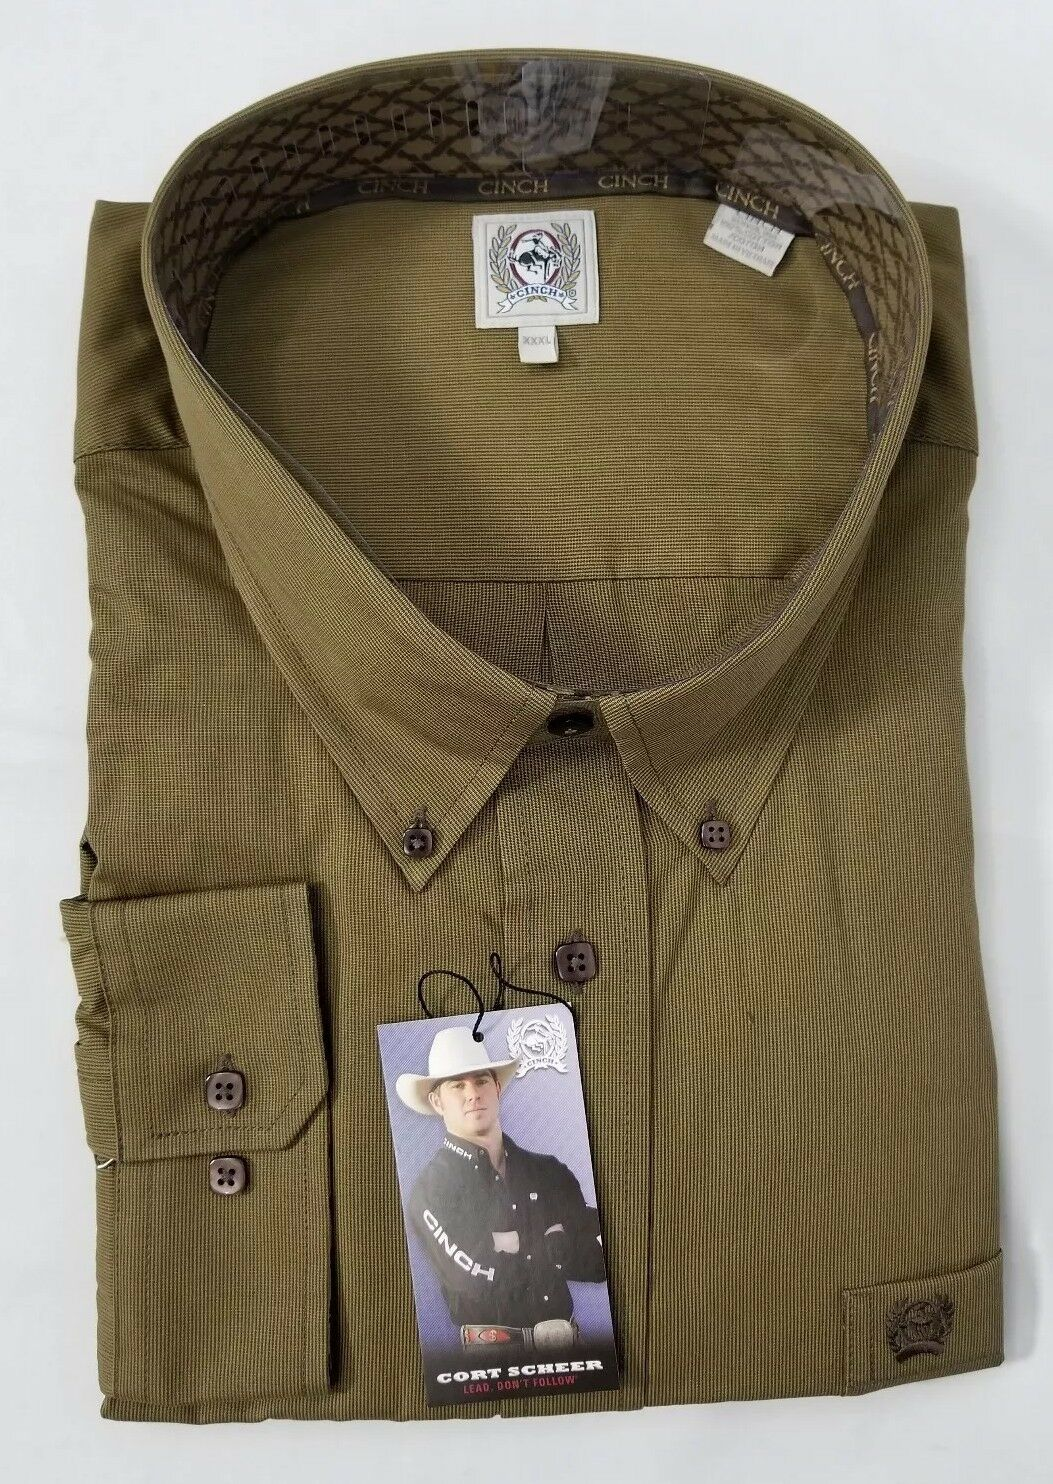 Cinch Classic Fit Western button down long sleeve shirt mens size 3XL.